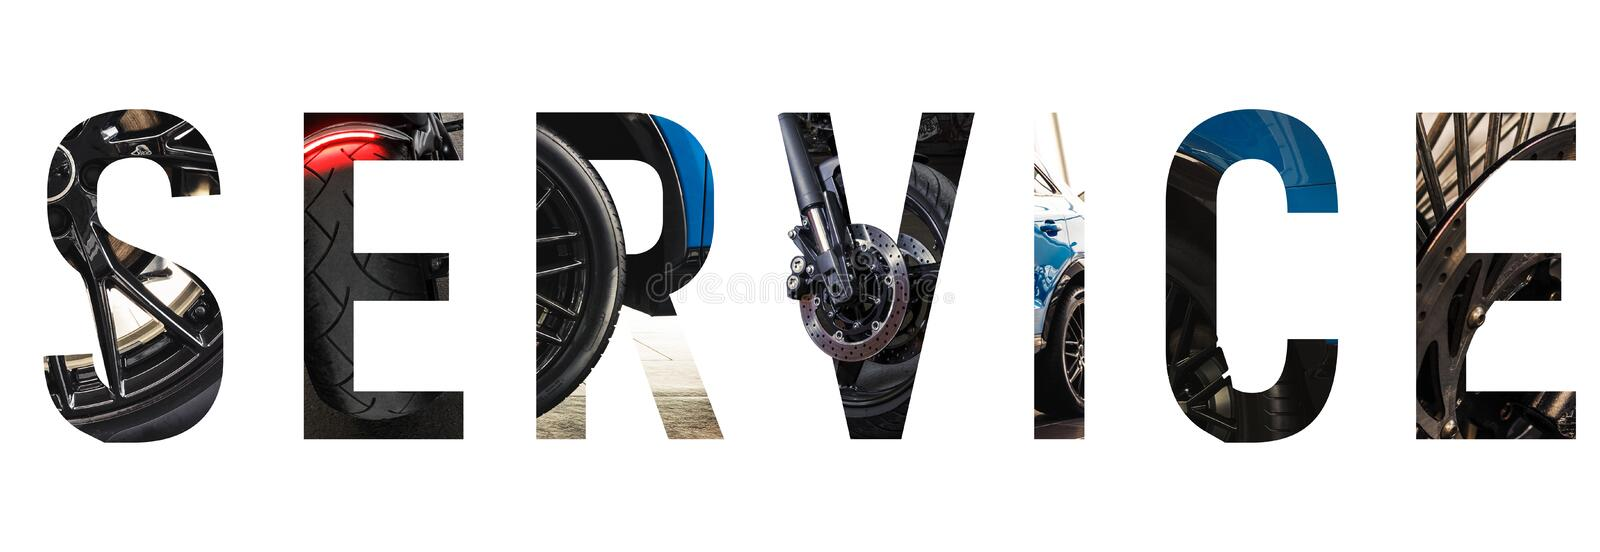 Automotive font Alphabet wording SERVICE royalty free illustration